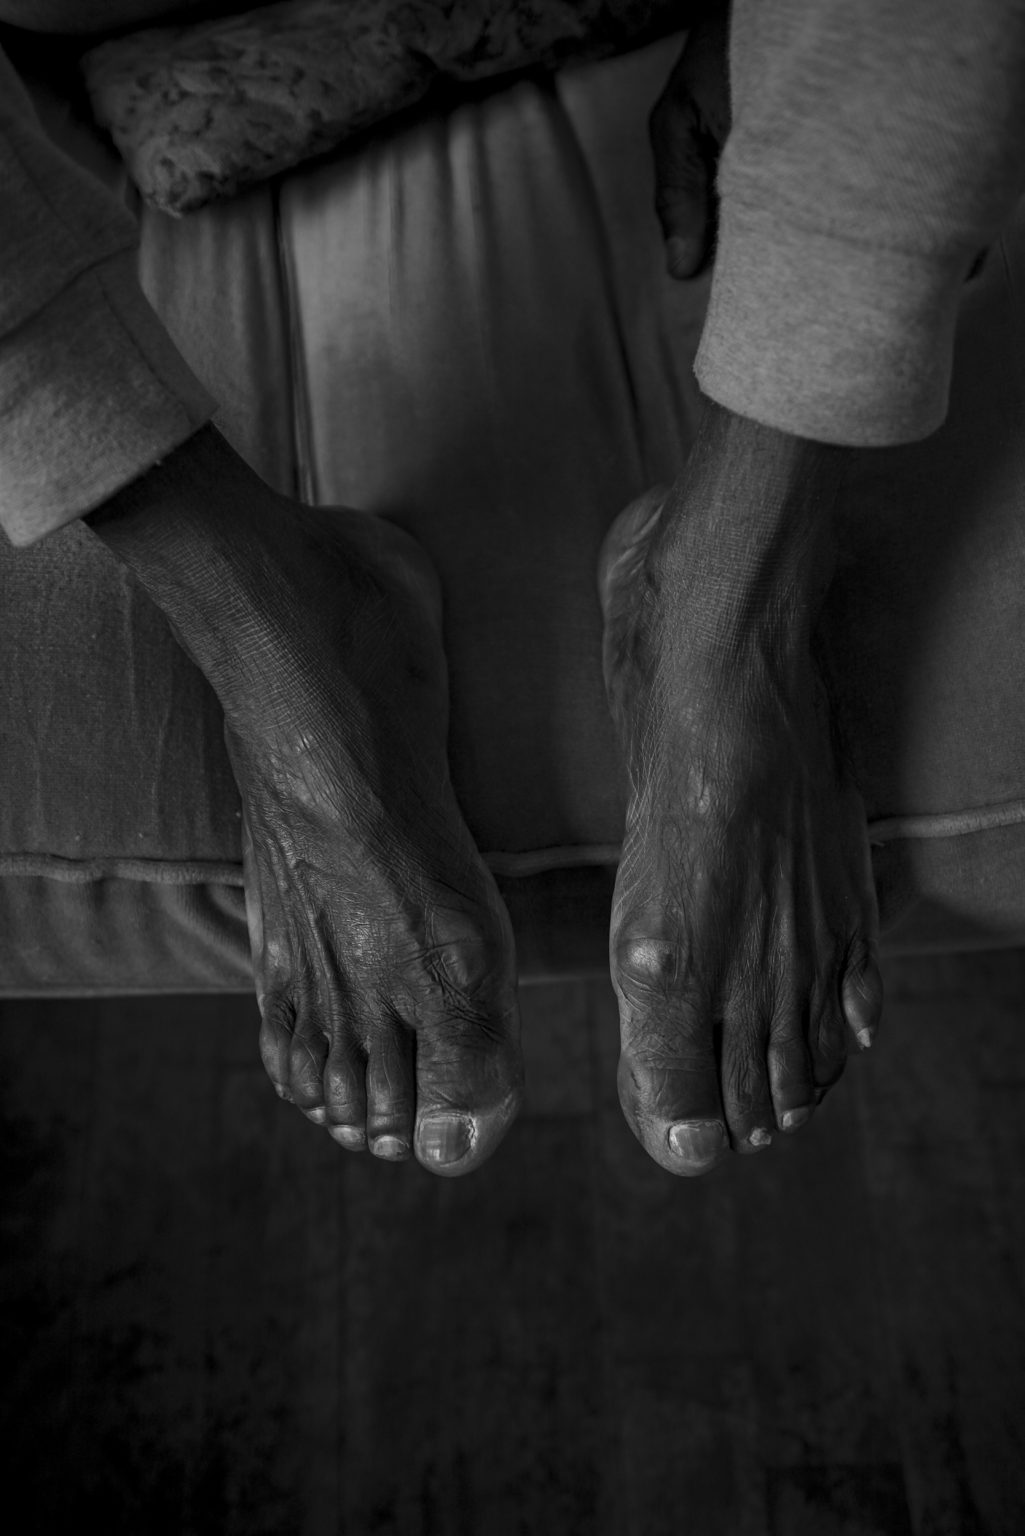 The battered feet of those who arrive after traveling thousands of miles on foot. But also swollen from torture in Libyan prisons. Reggio Emilia, Italy, 2019